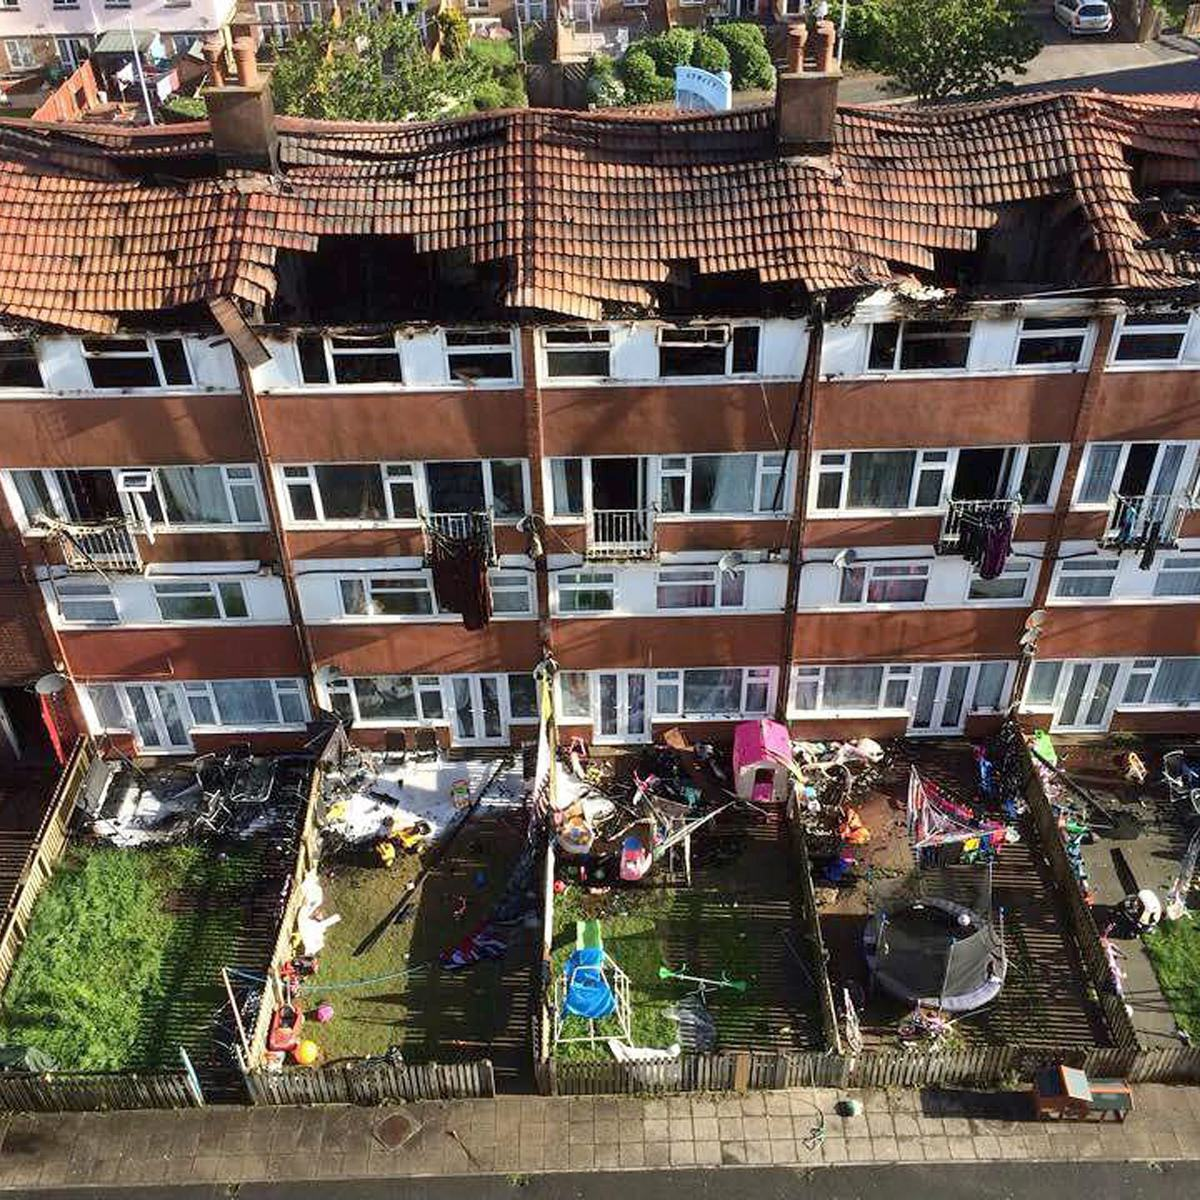 Boy Tries To Recreate Science Experiment, Burns Down Block Of Flats Causing £3m Damage UNILAD SWNS FLAT FIRE 0267613